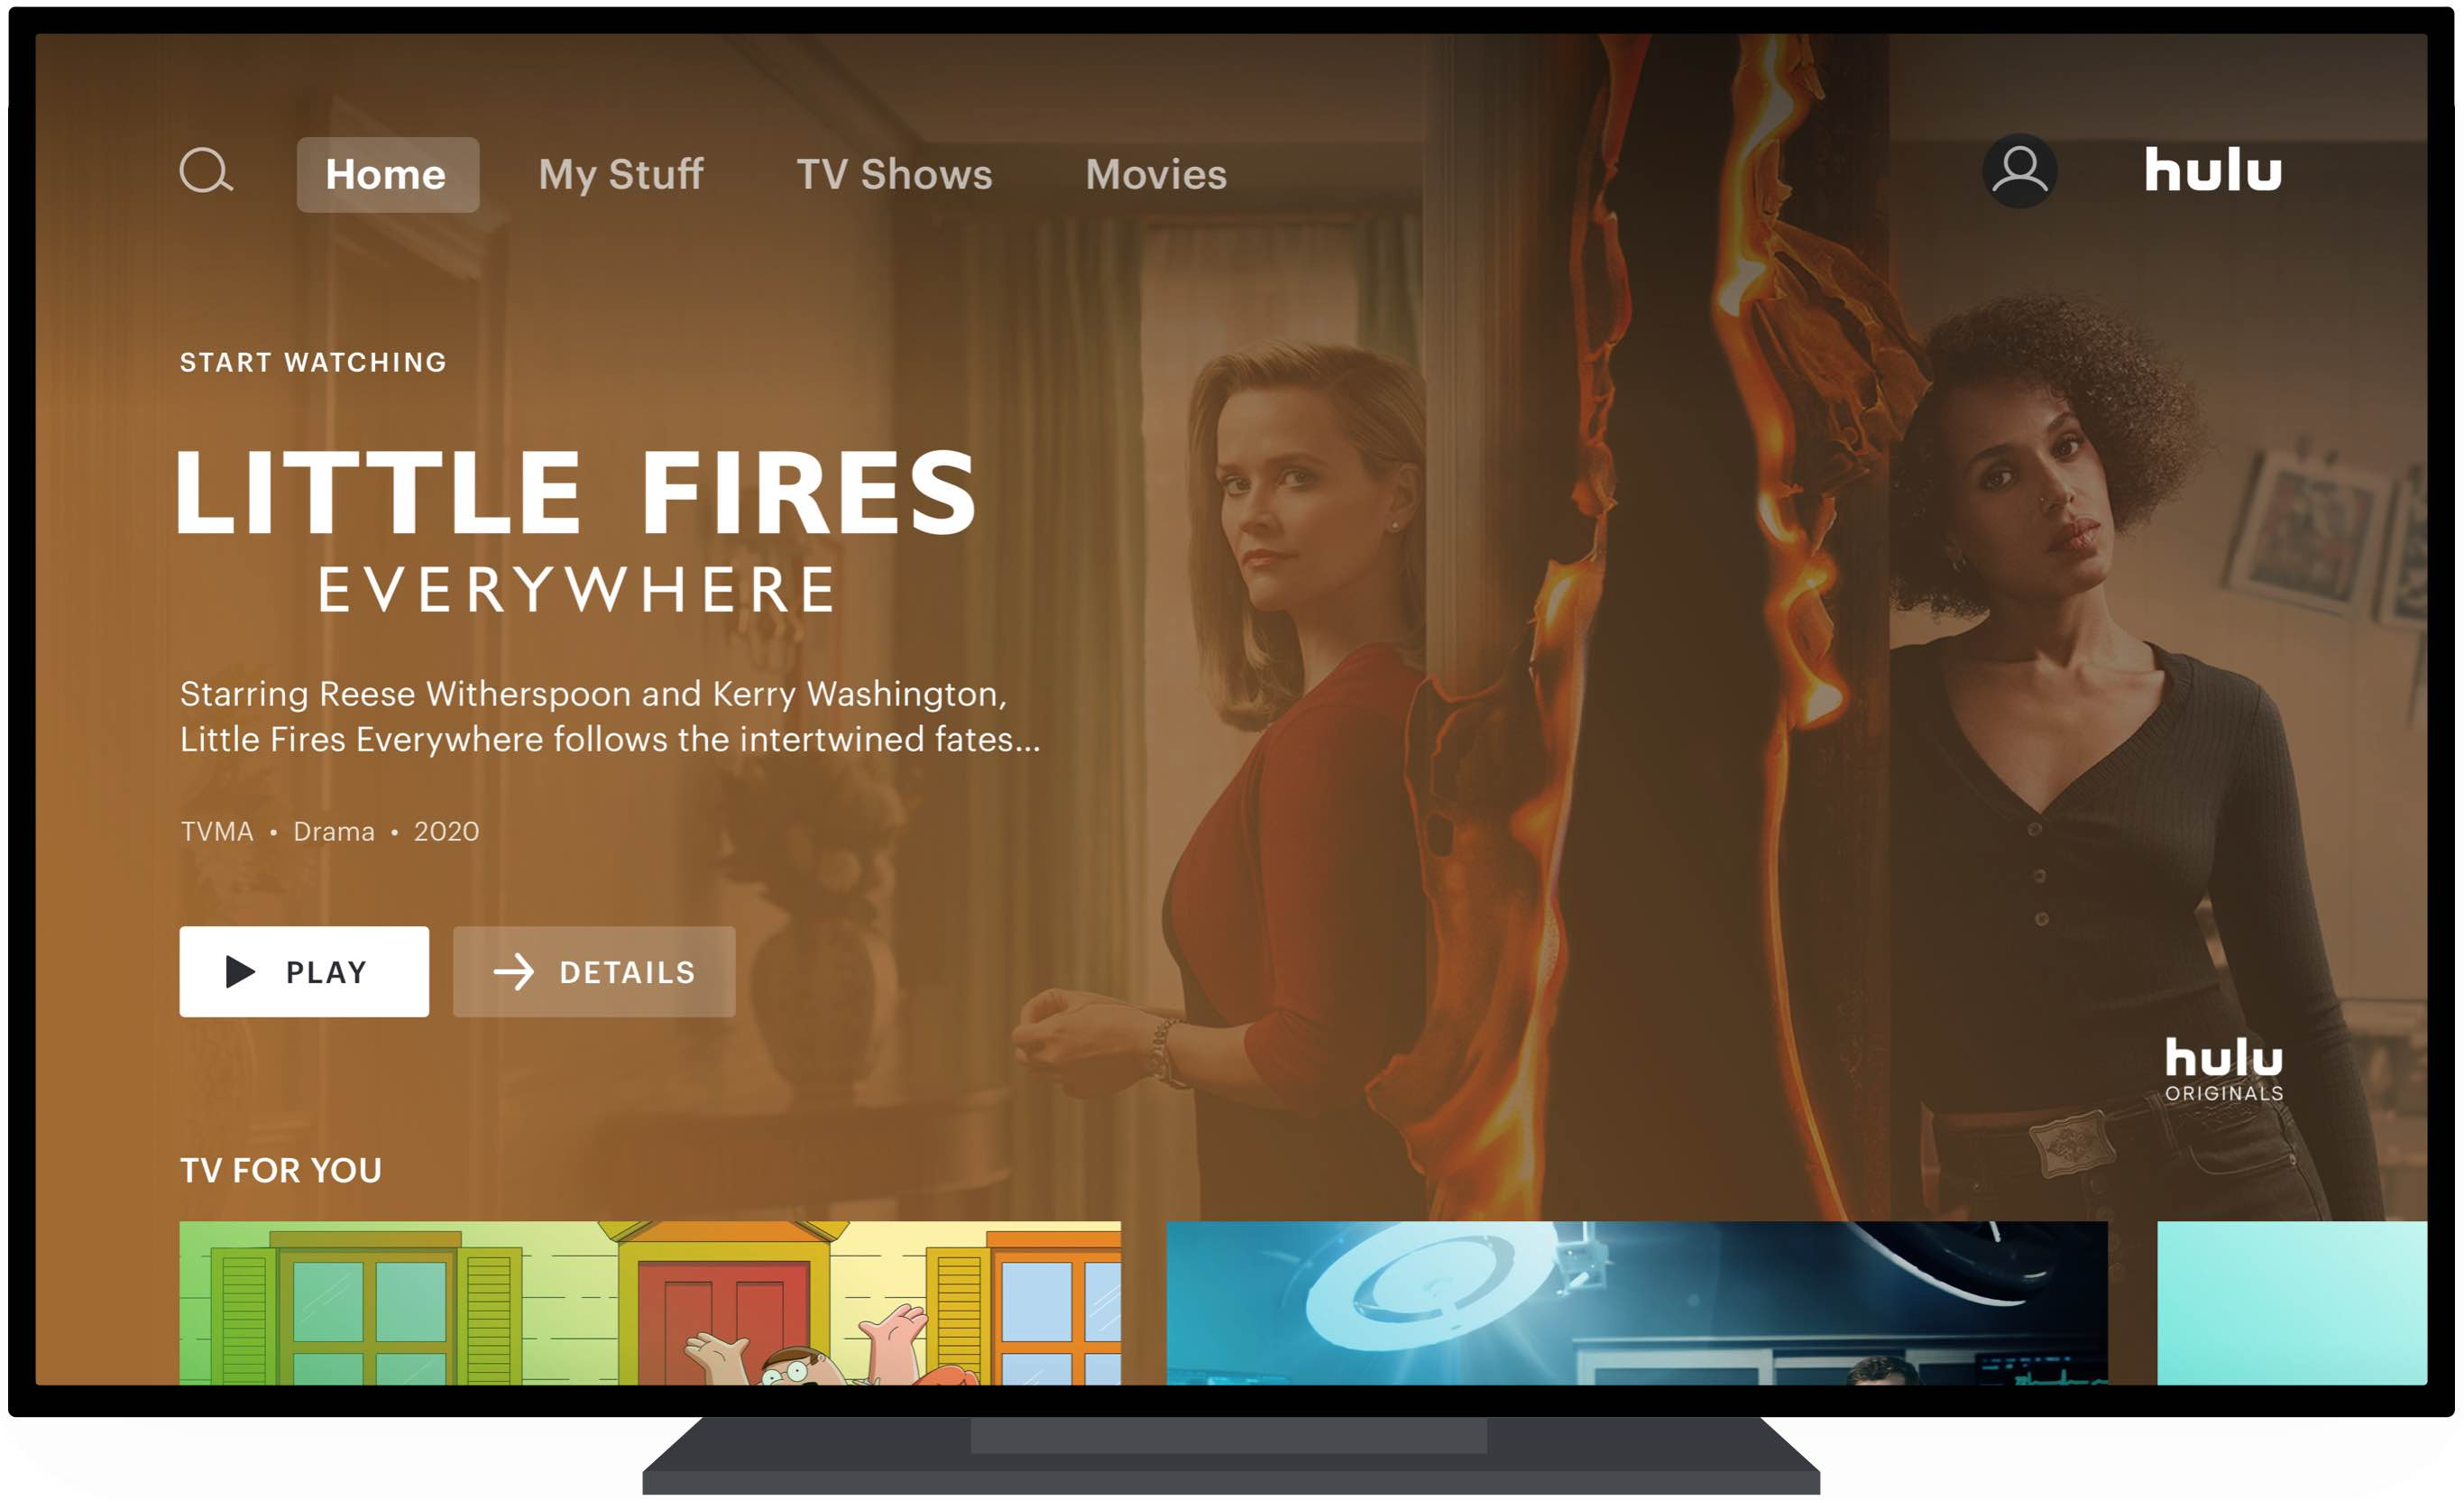 The redesigned Hulu home screen on Apple TV